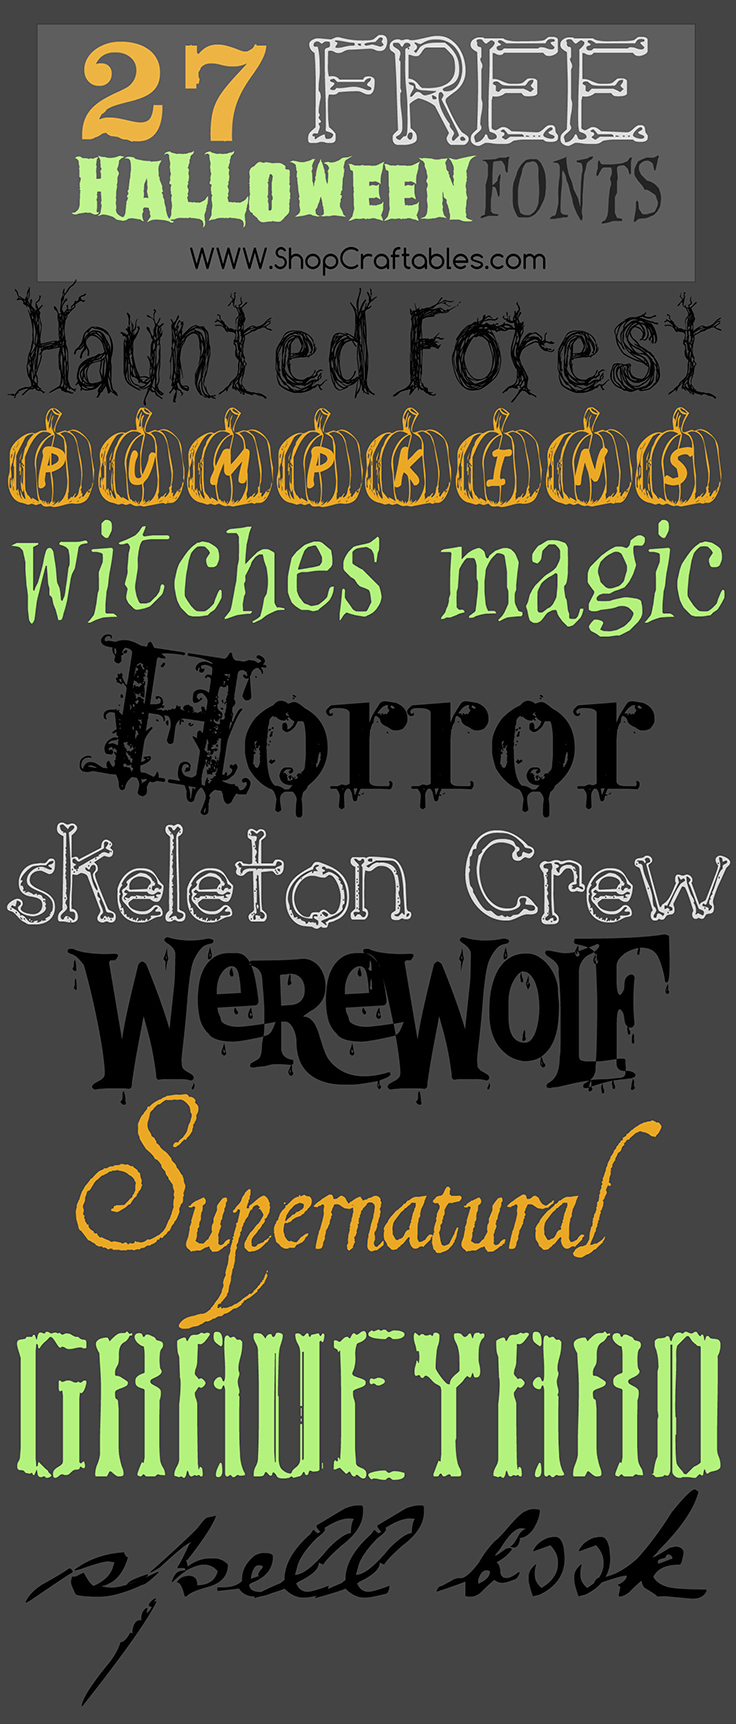 Free Halloween Fonts | Cricut and Silhouette | Craftables